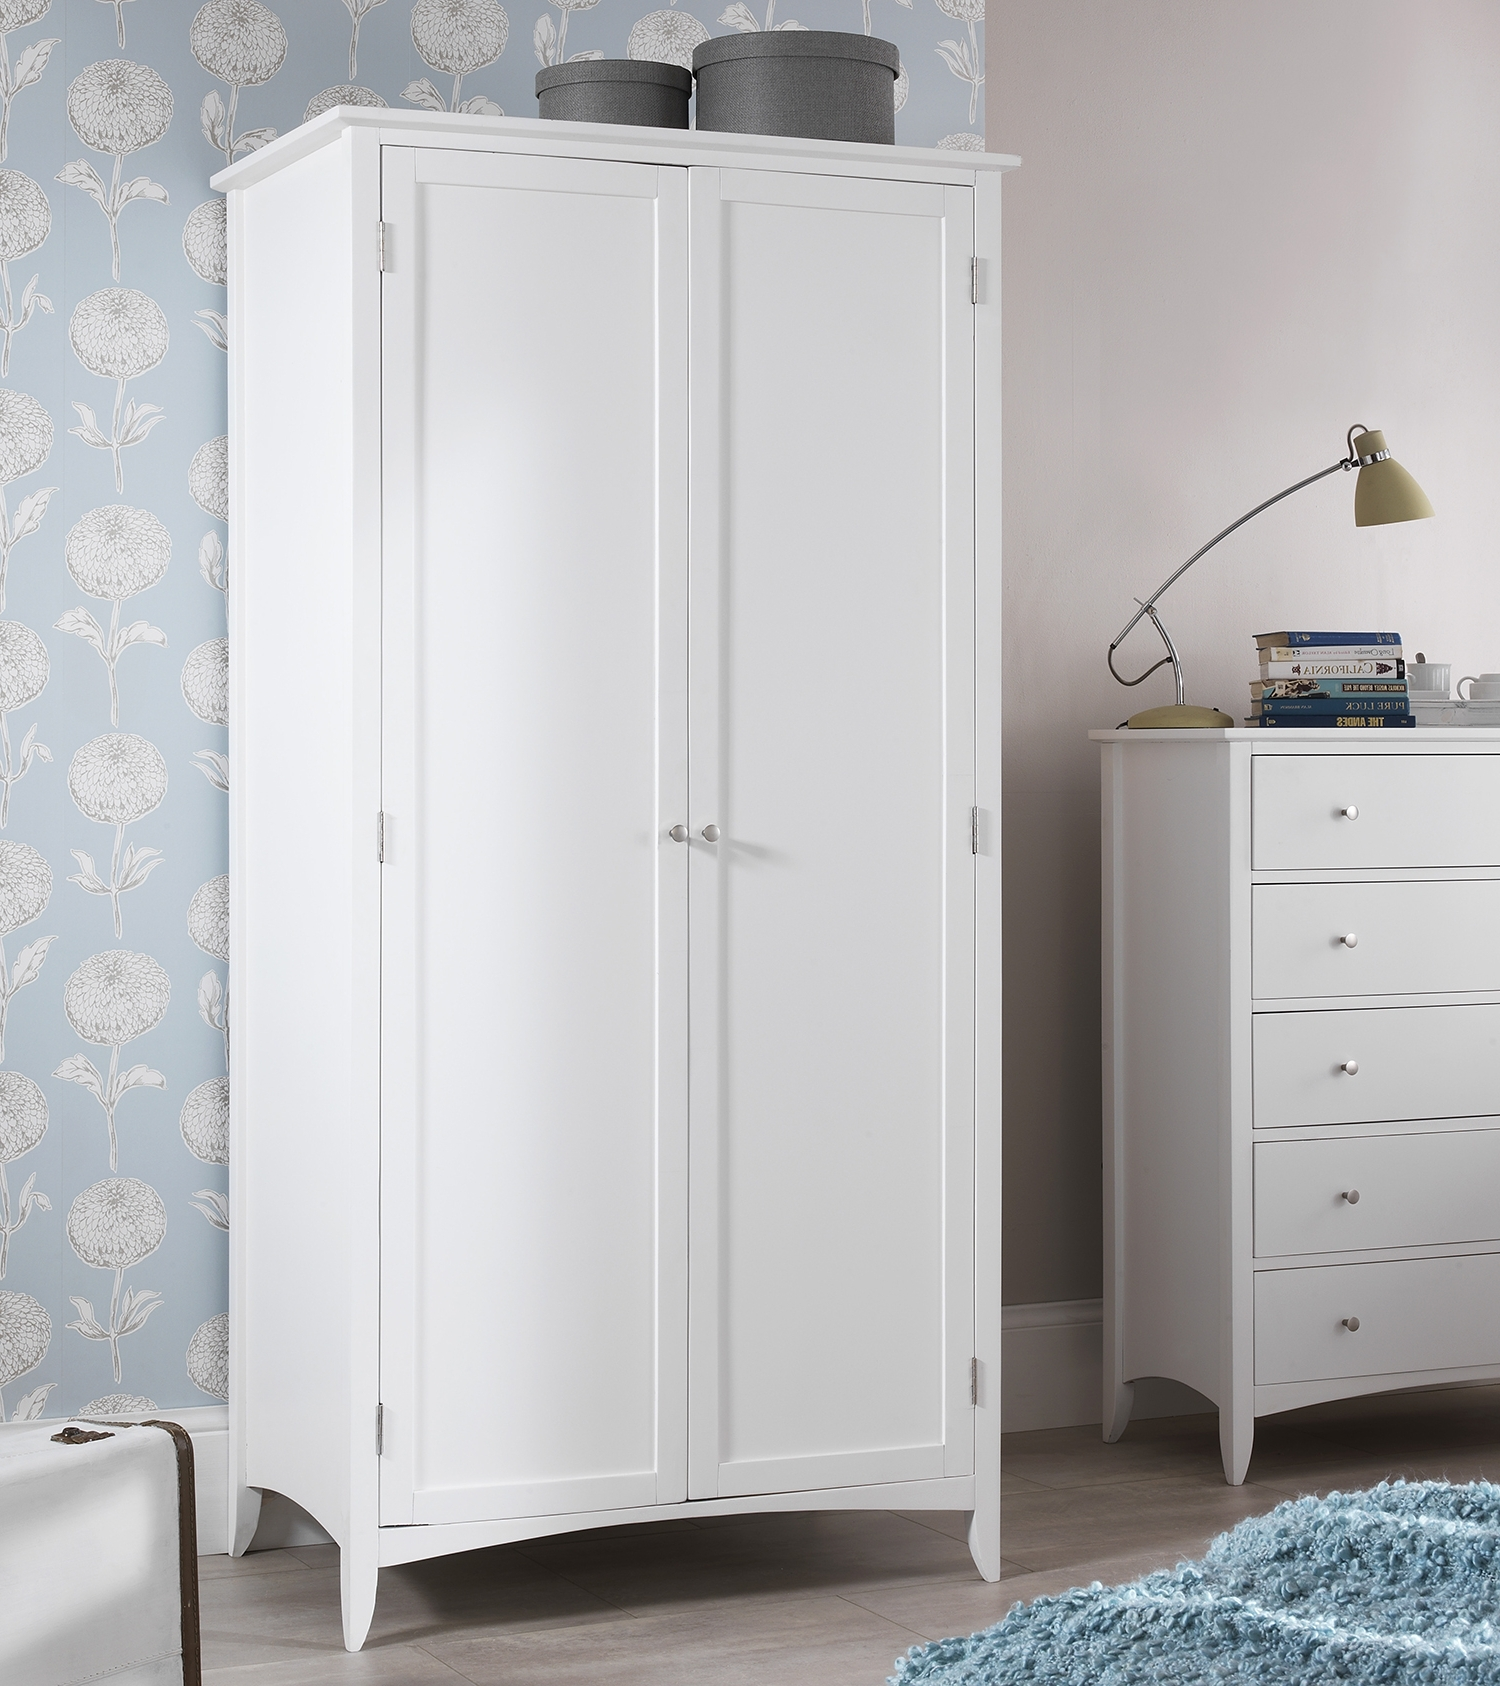 Cheap Wardrobes And Chest Of Drawers Throughout Latest Edward Hopper White Furniture, Bedside Table, Chest Of Drawers (View 5 of 15)